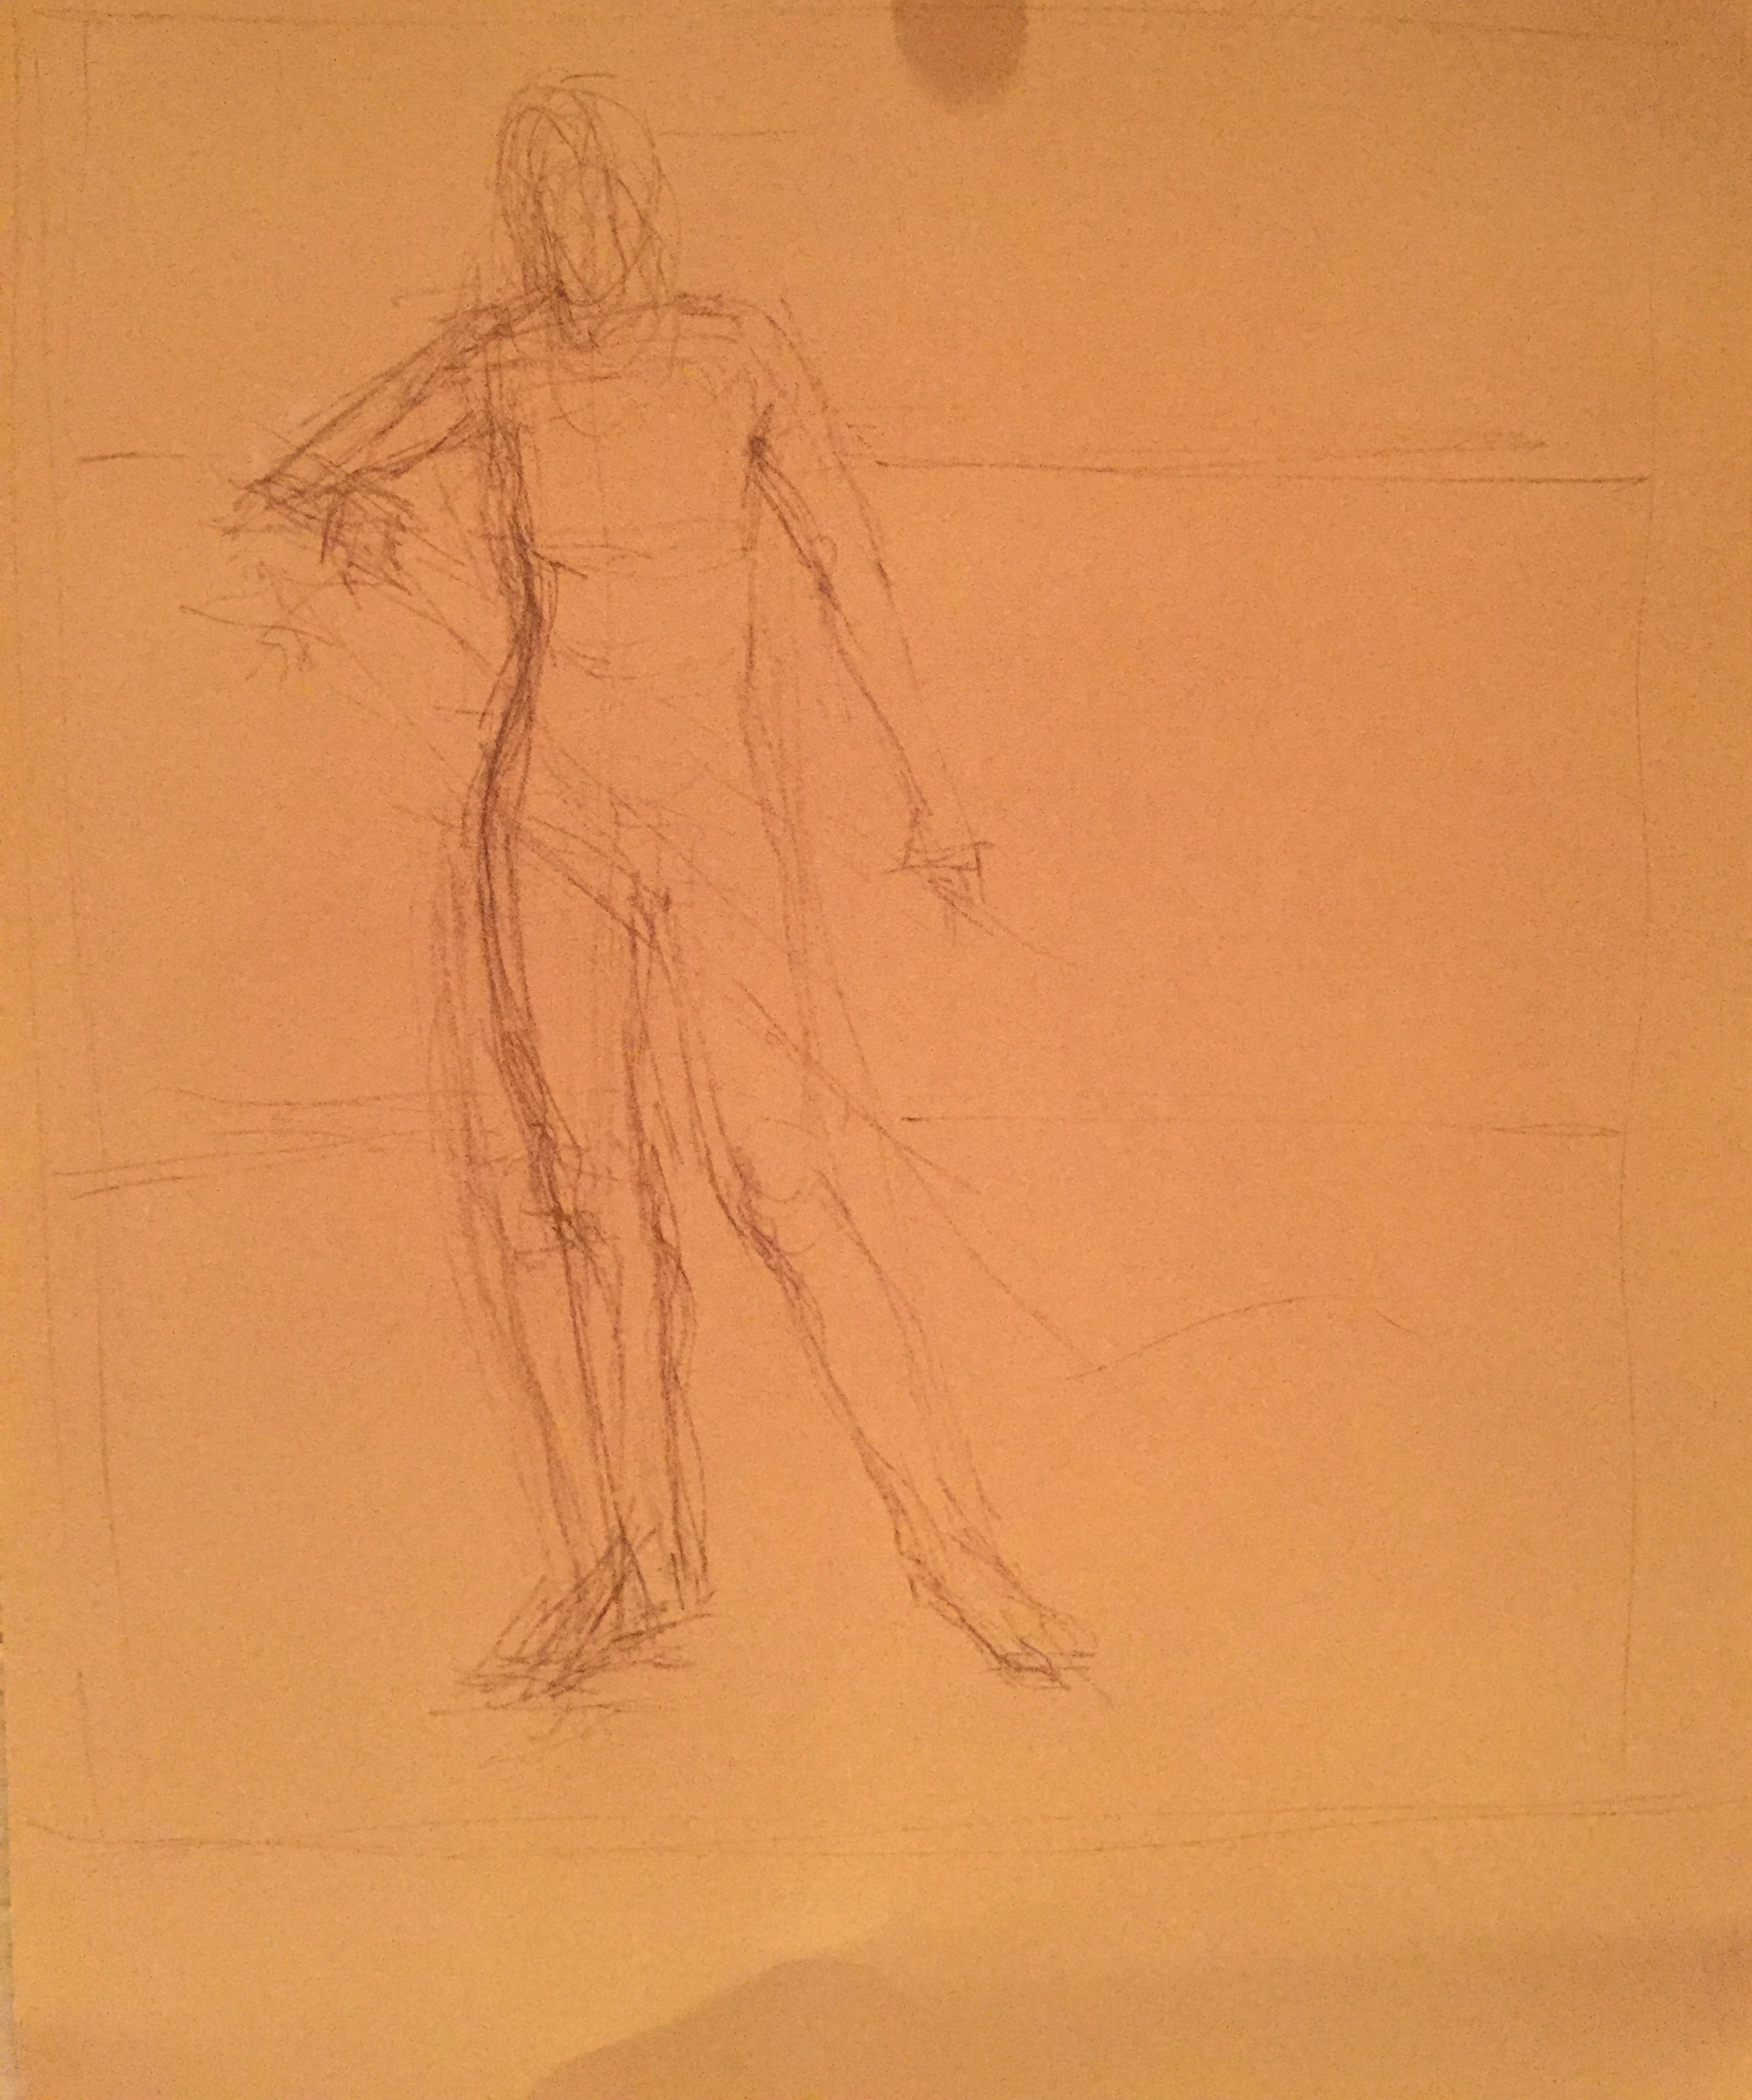 Demo with Sennelier pastels: Cretacolour pencil used to draw up the figure on La Carte paper. I would normally use vine charcoal but none available. This pencil worked well.